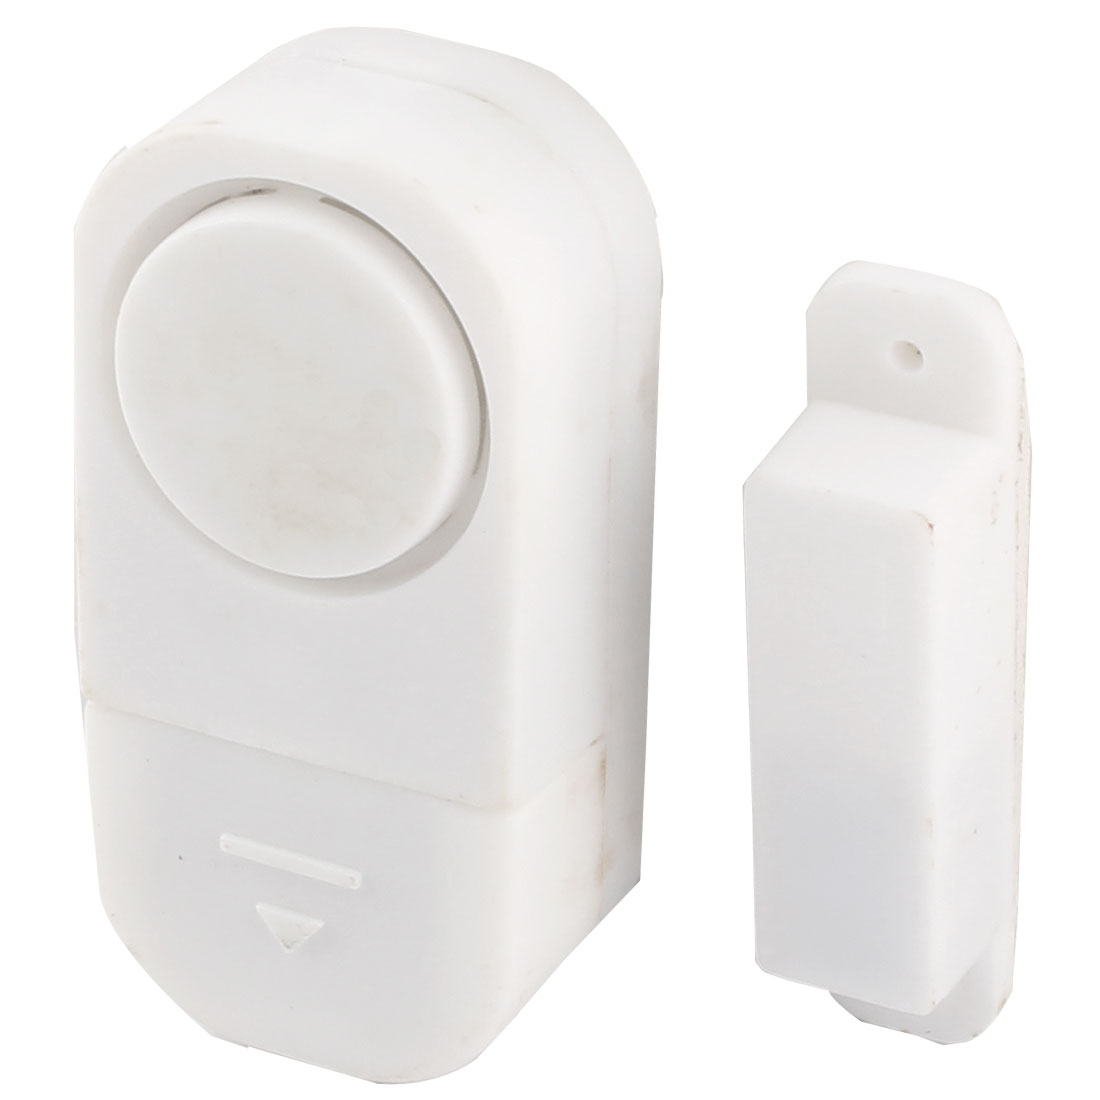 Home Door Plastic Shell Wall Mounted Motion Detector Burglar Wireless Security Alarm System White